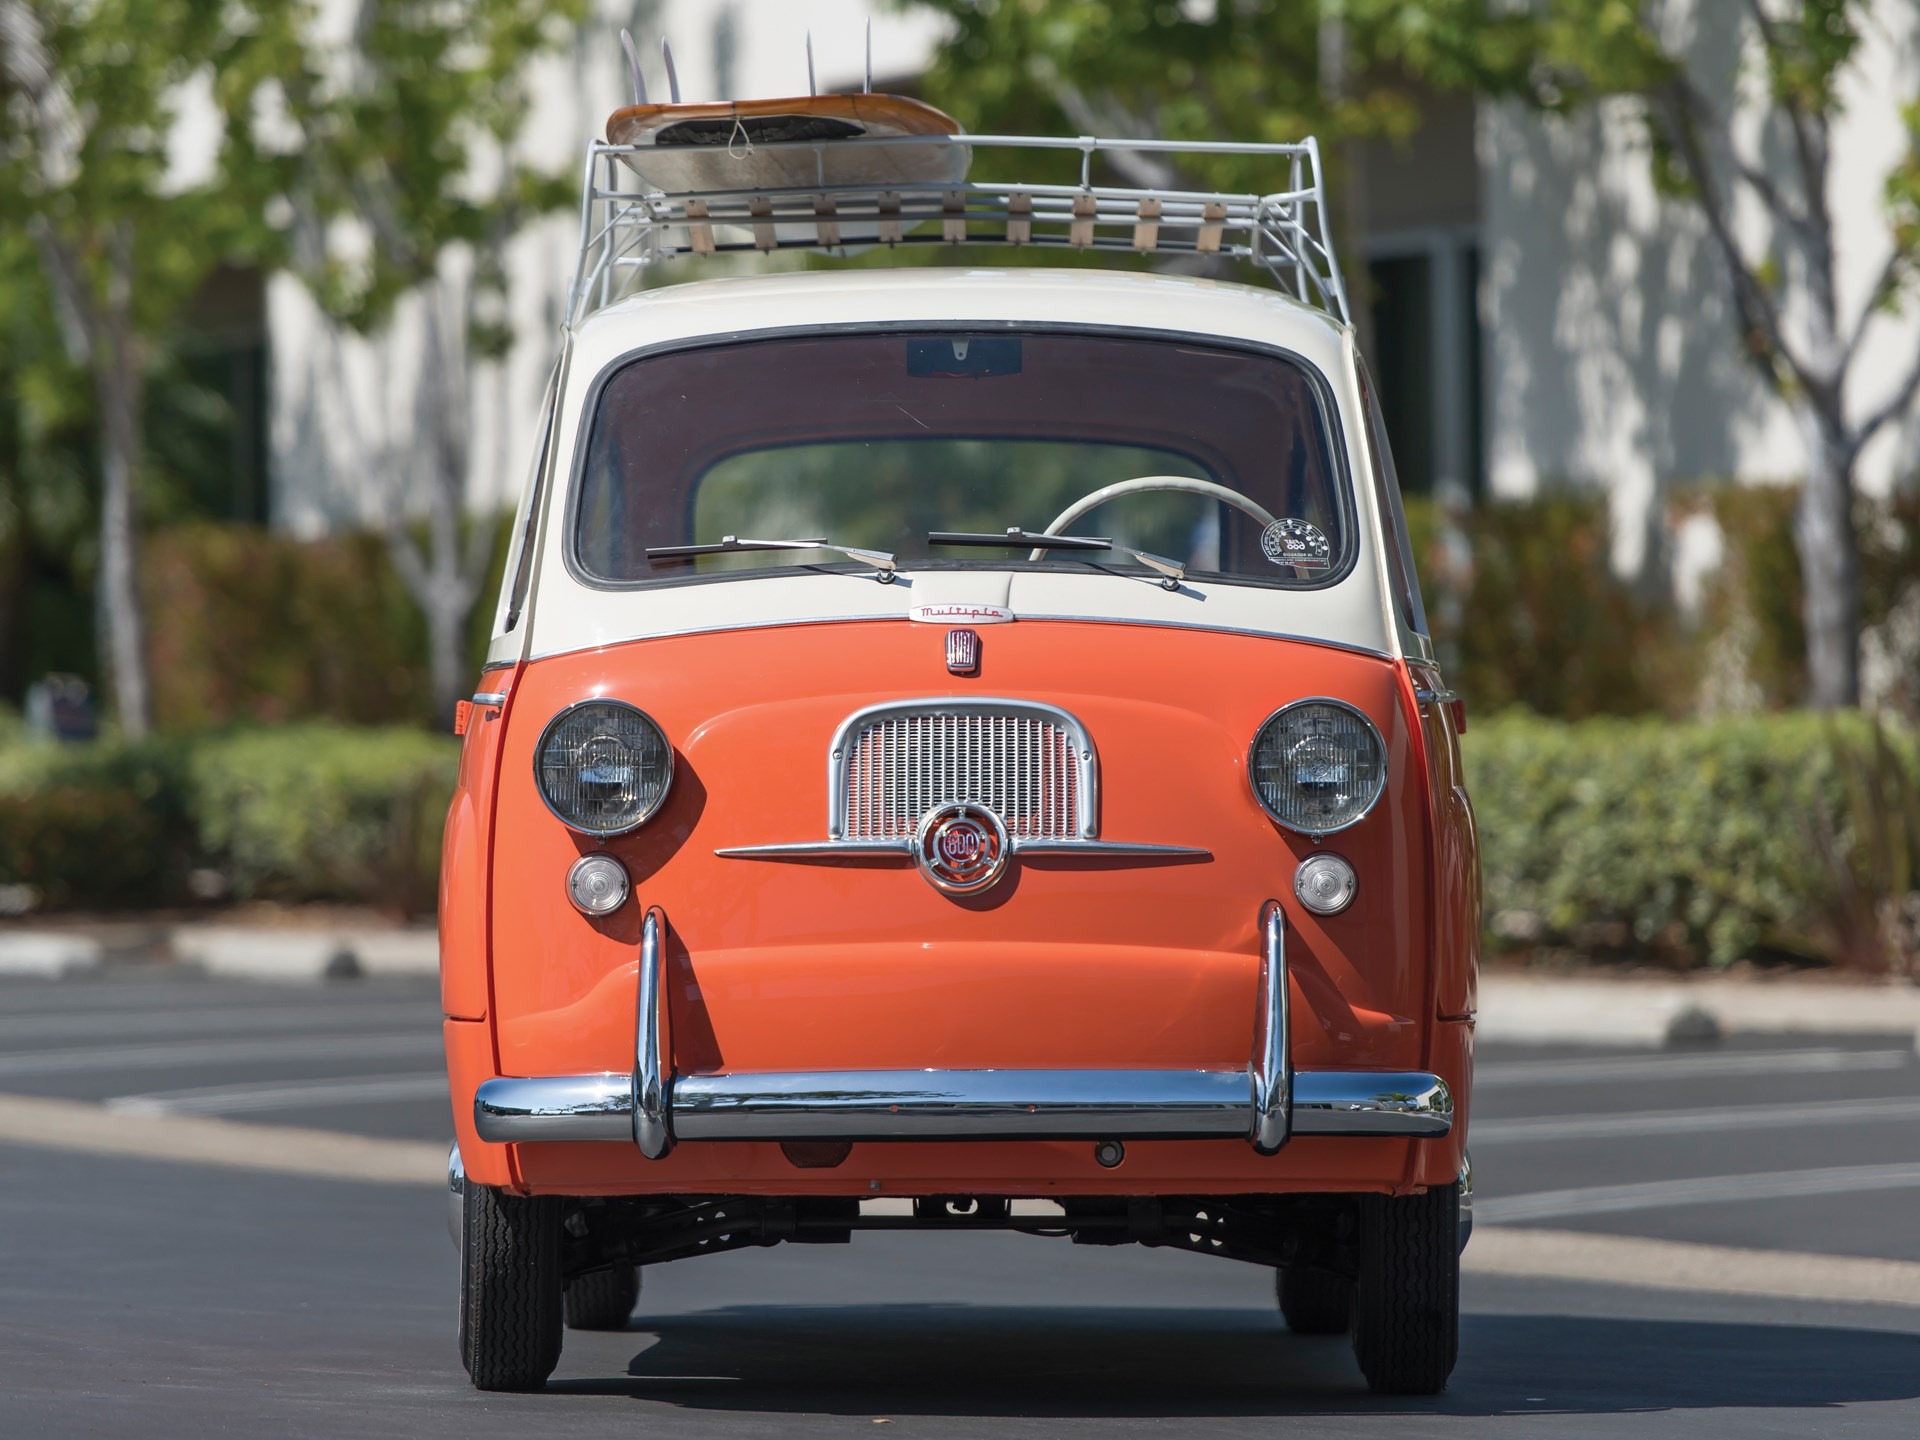 1960 Fiat 600 Jolly & 1958 Fiat 600 Multipla